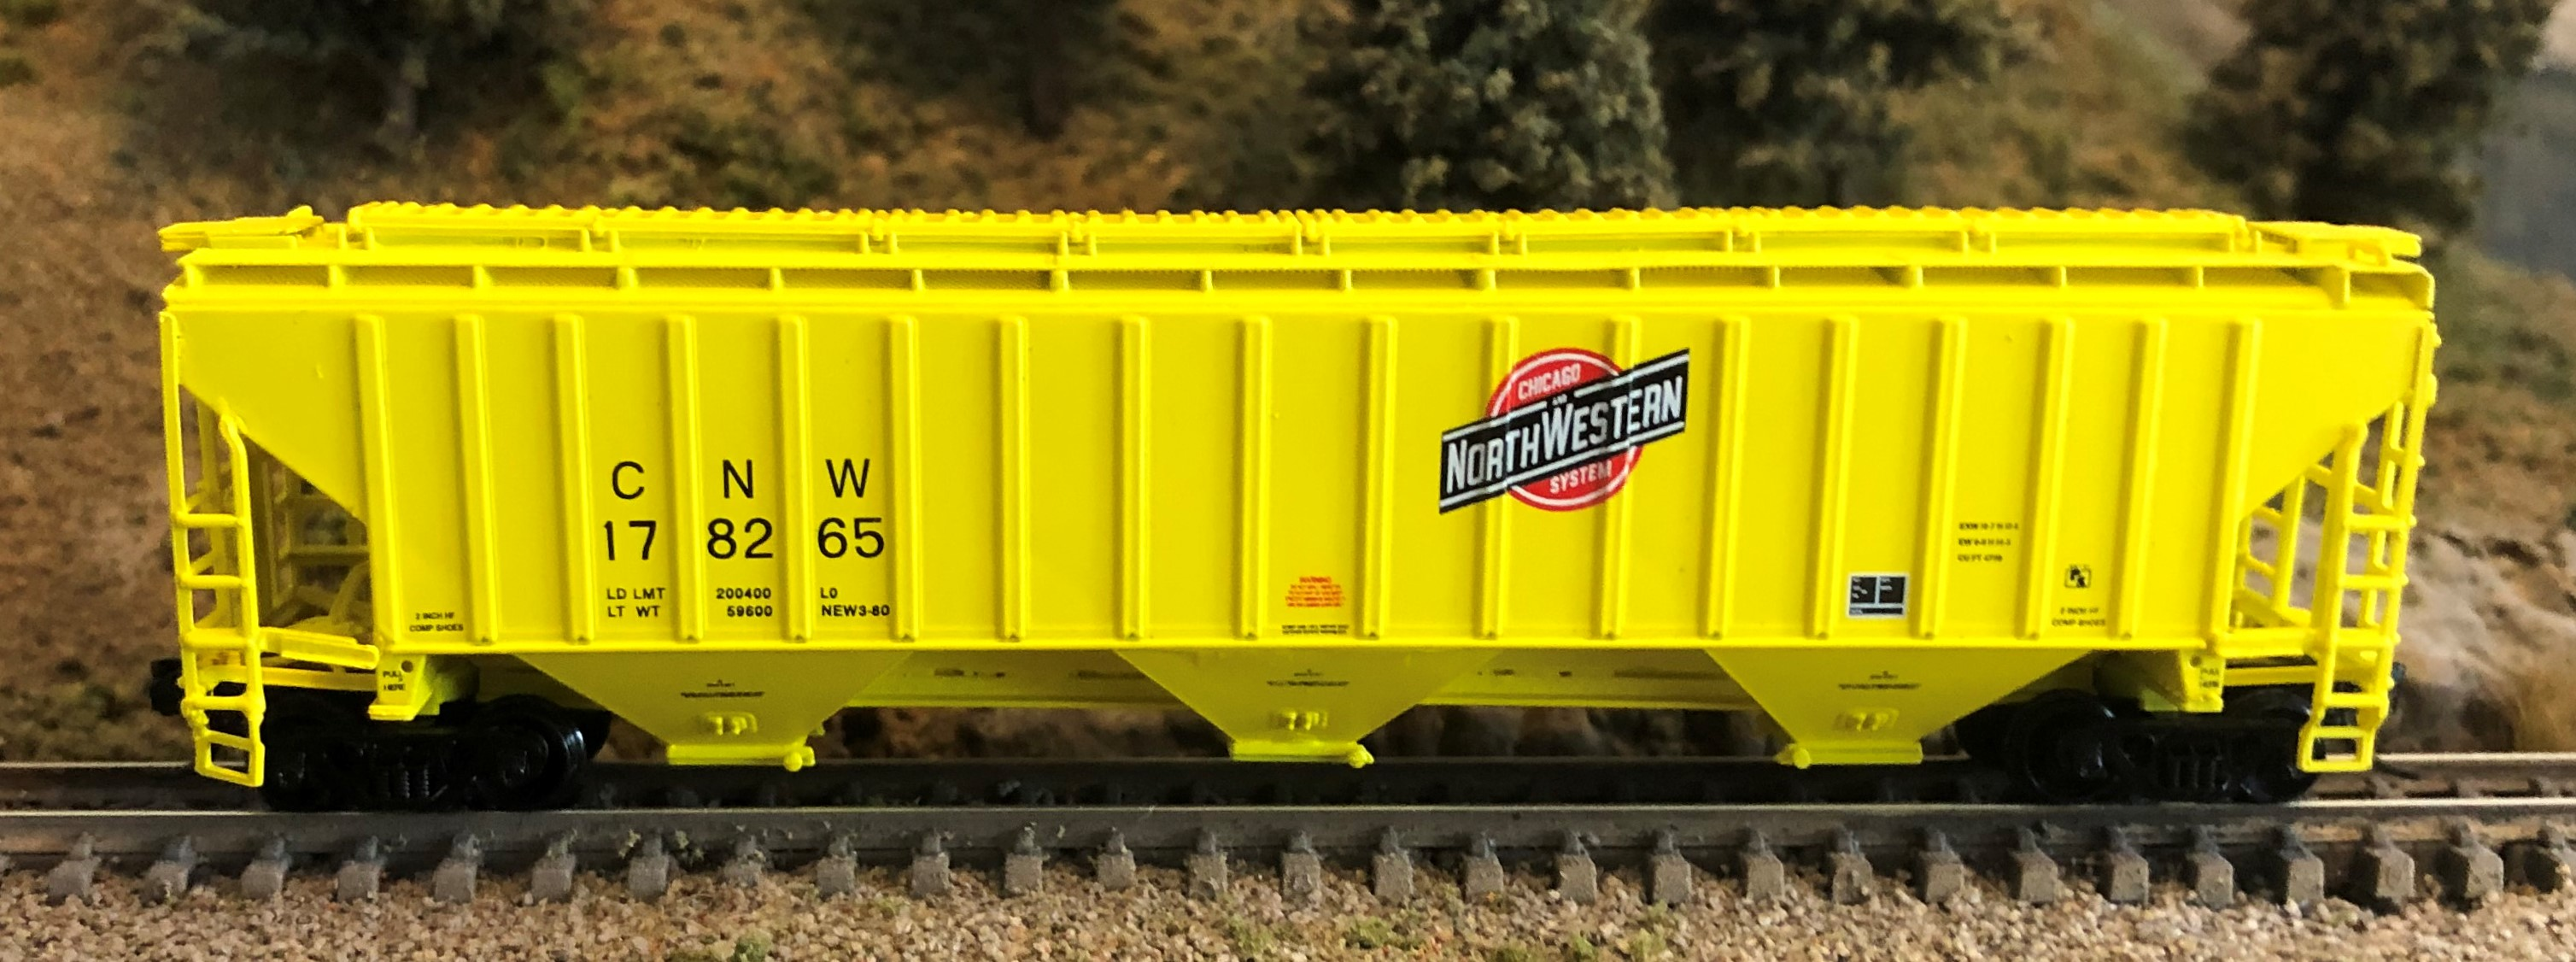 N Scale - InterMountain - 65359-01 - Covered Hopper, 3-Bay, Thrall 4750 - Chicago & North Western - 178000